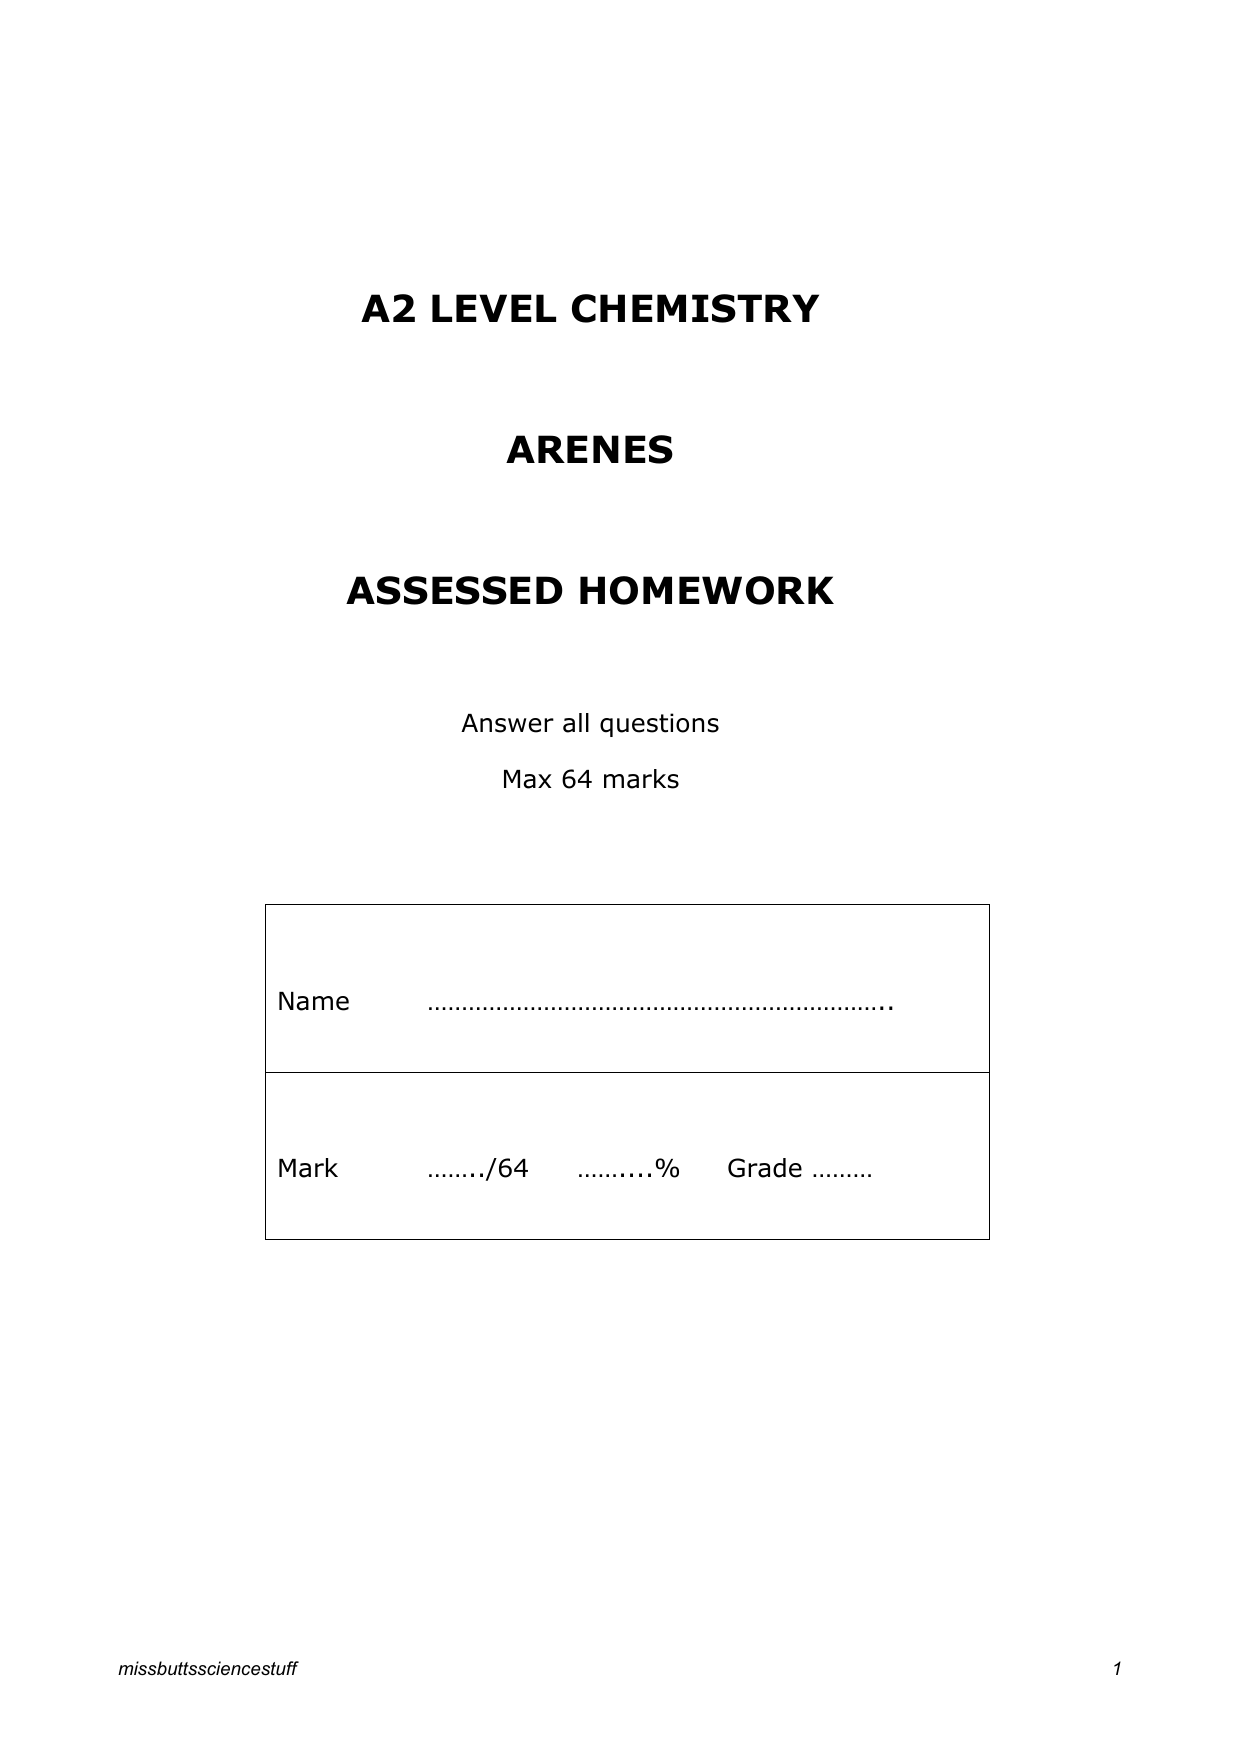 a2 level chemistry 4.1.1 arenes assessed homework